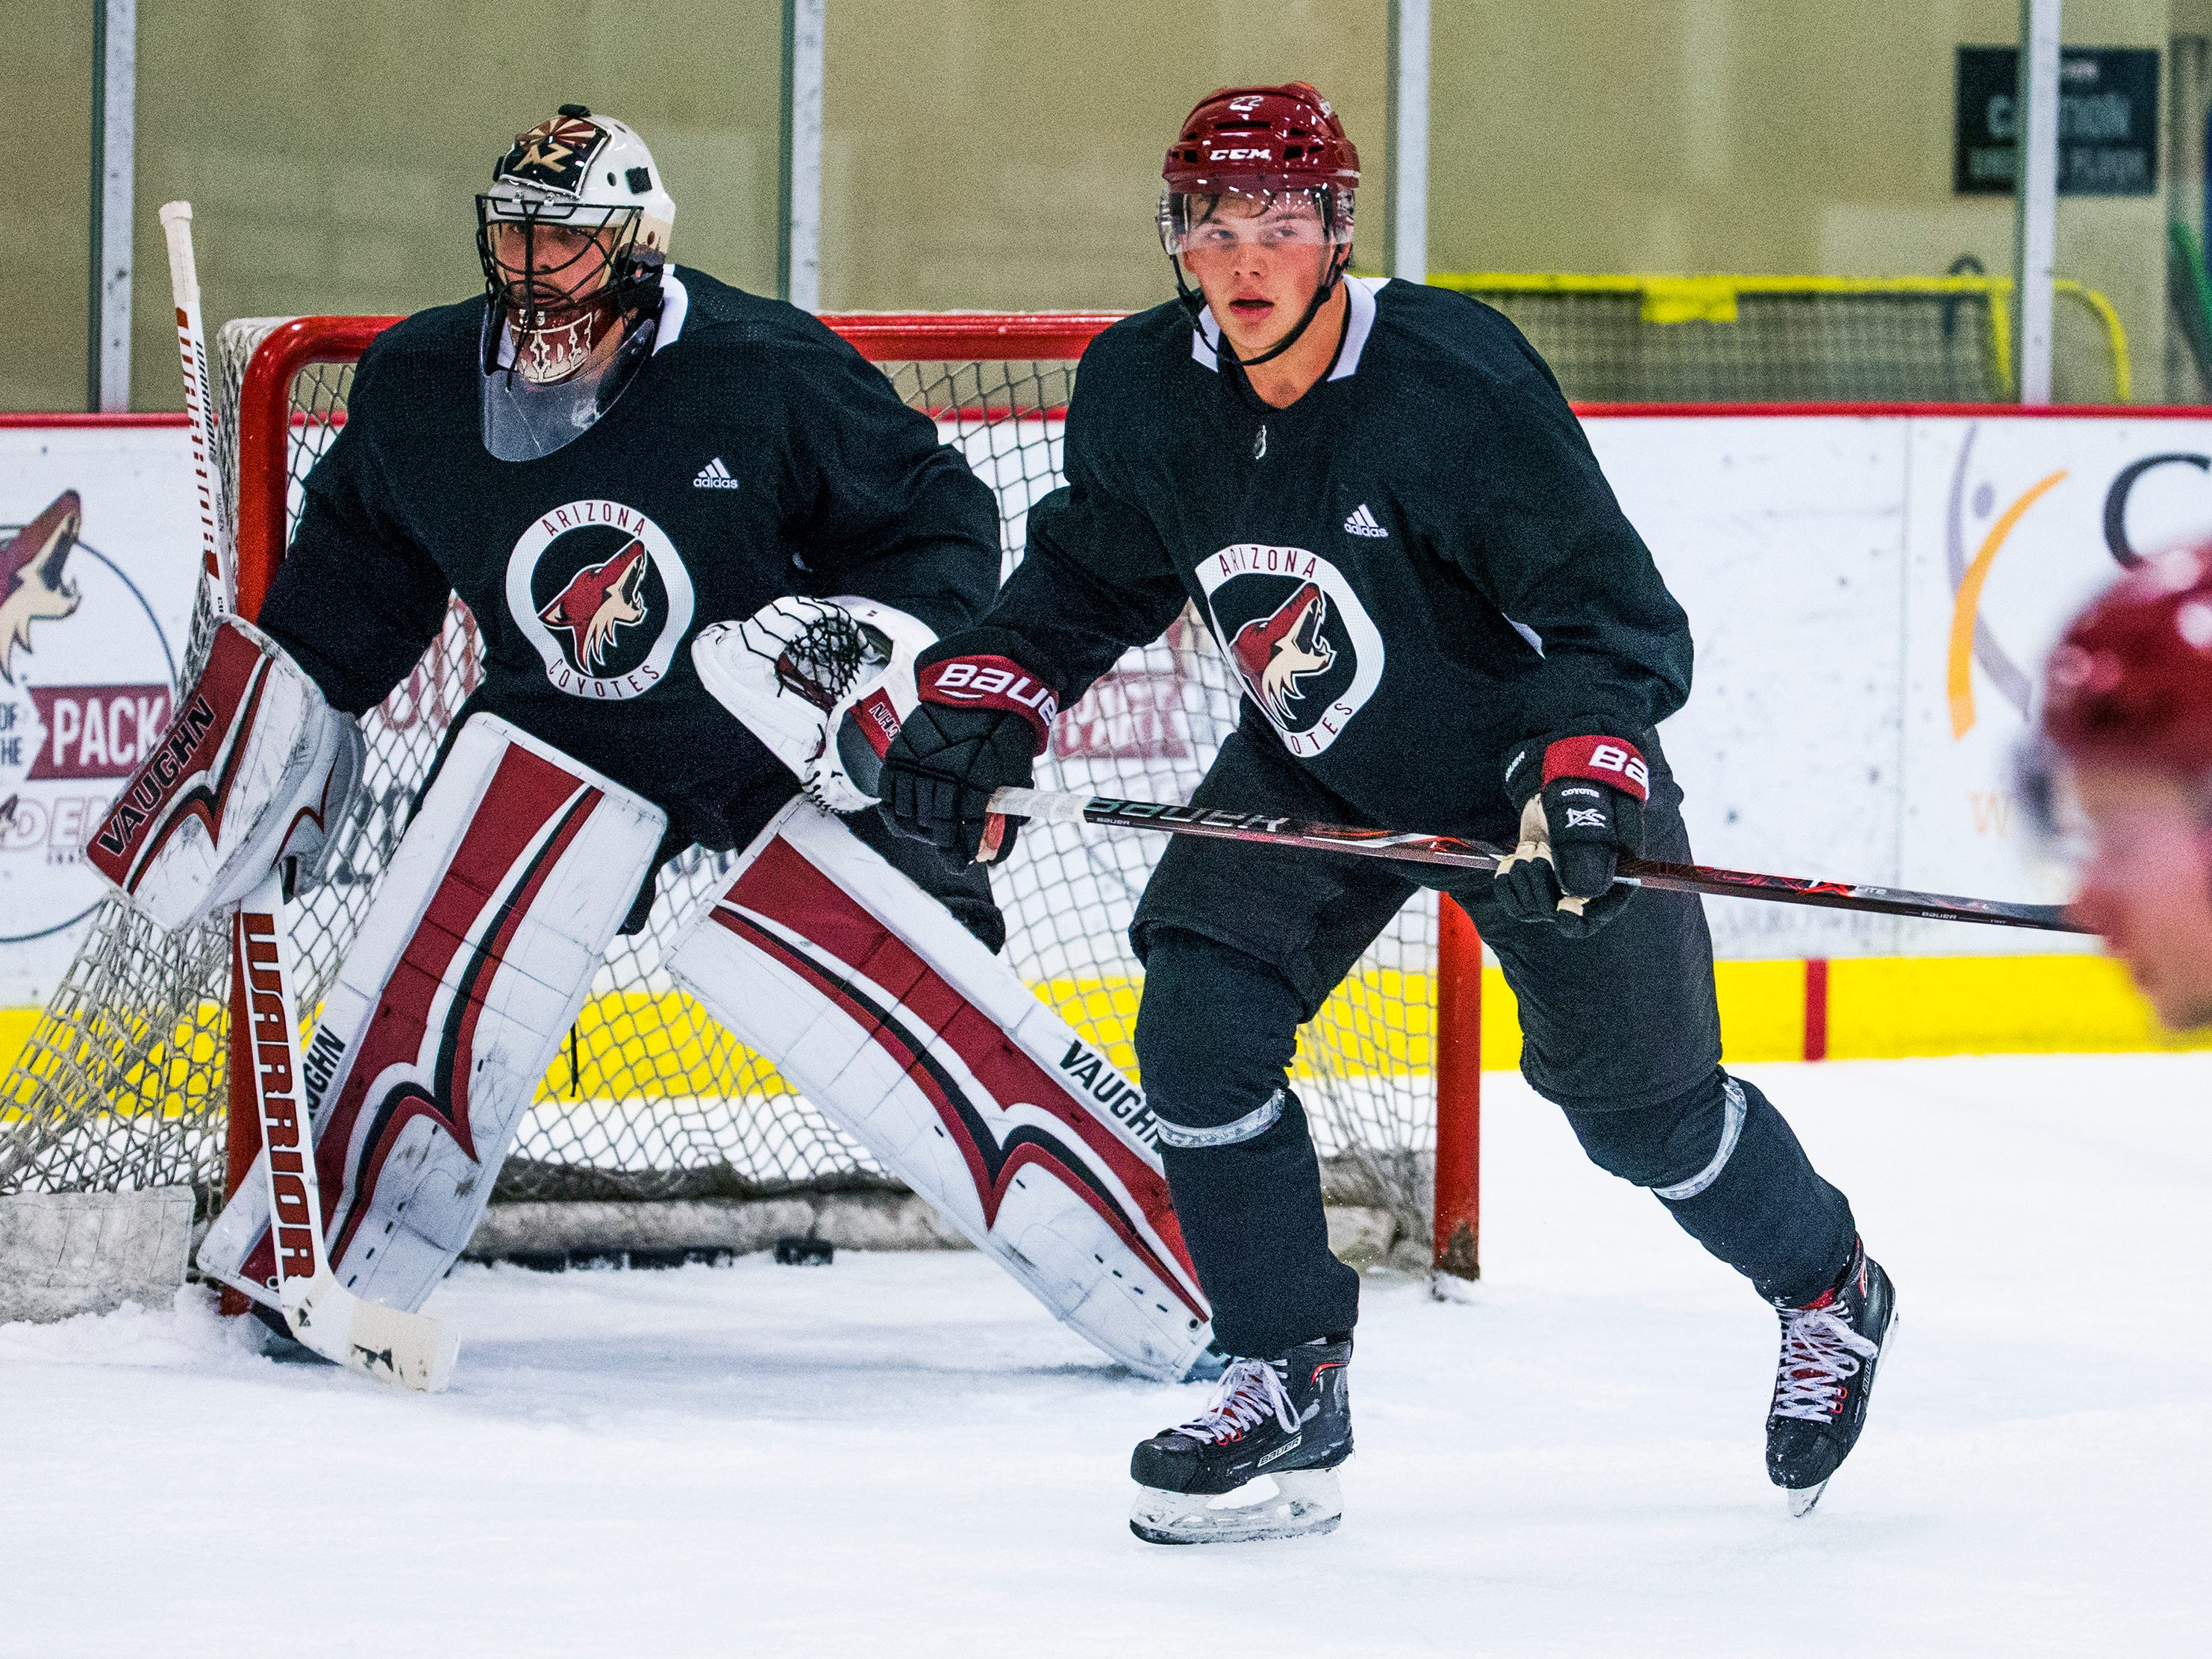 Barrett Hayton, middle, skates in front of the goal during Arizona Coyotes rookie camp at Ice Den Scottsdale, Friday, September 7, 2018.